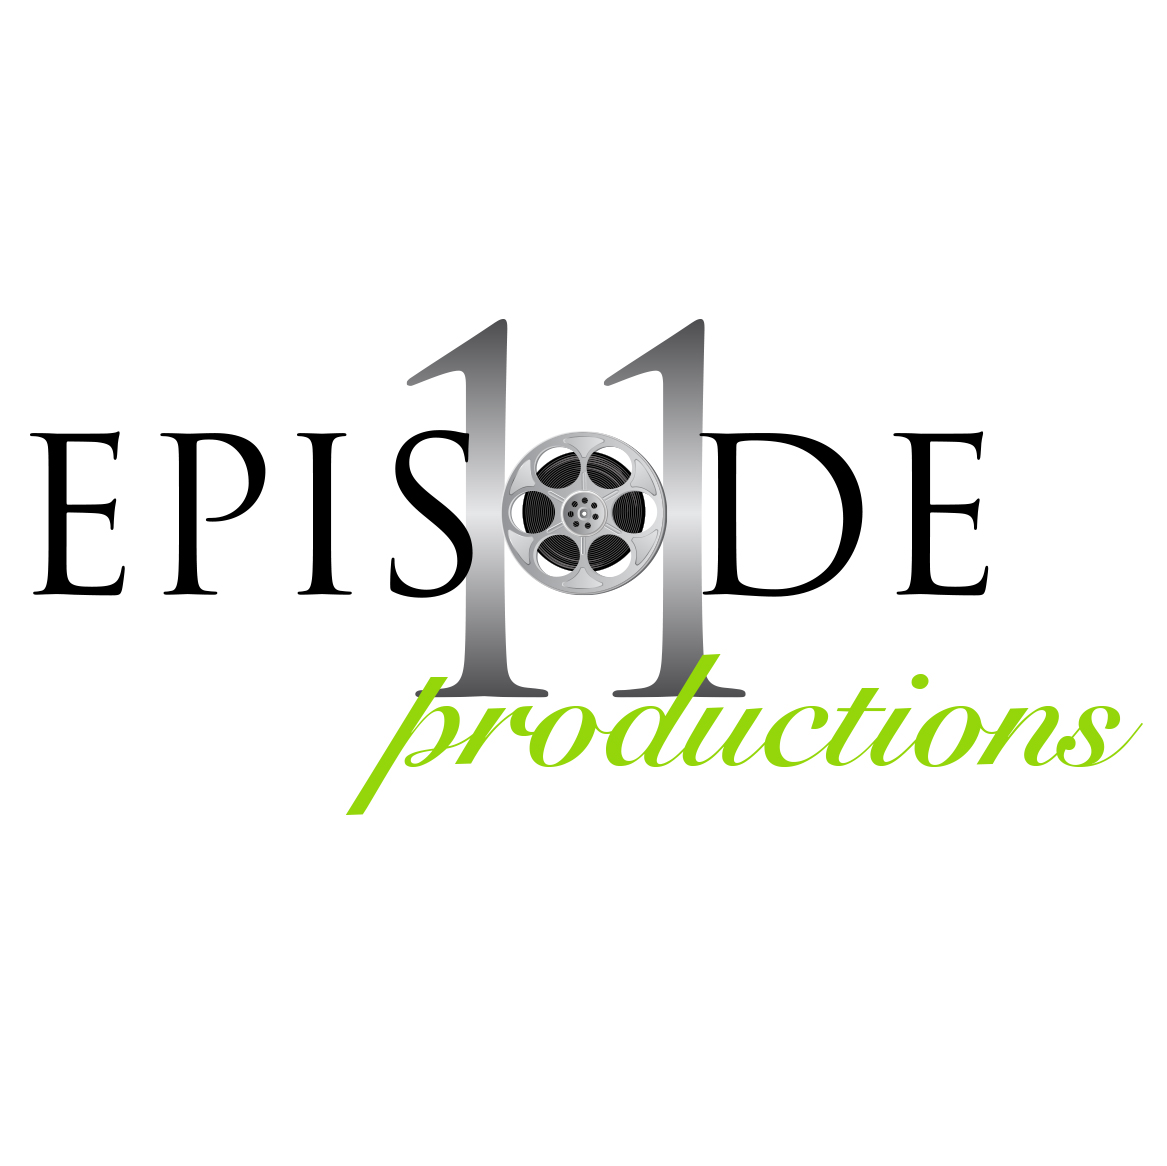 Video Production company logo: Episode 11 Productions